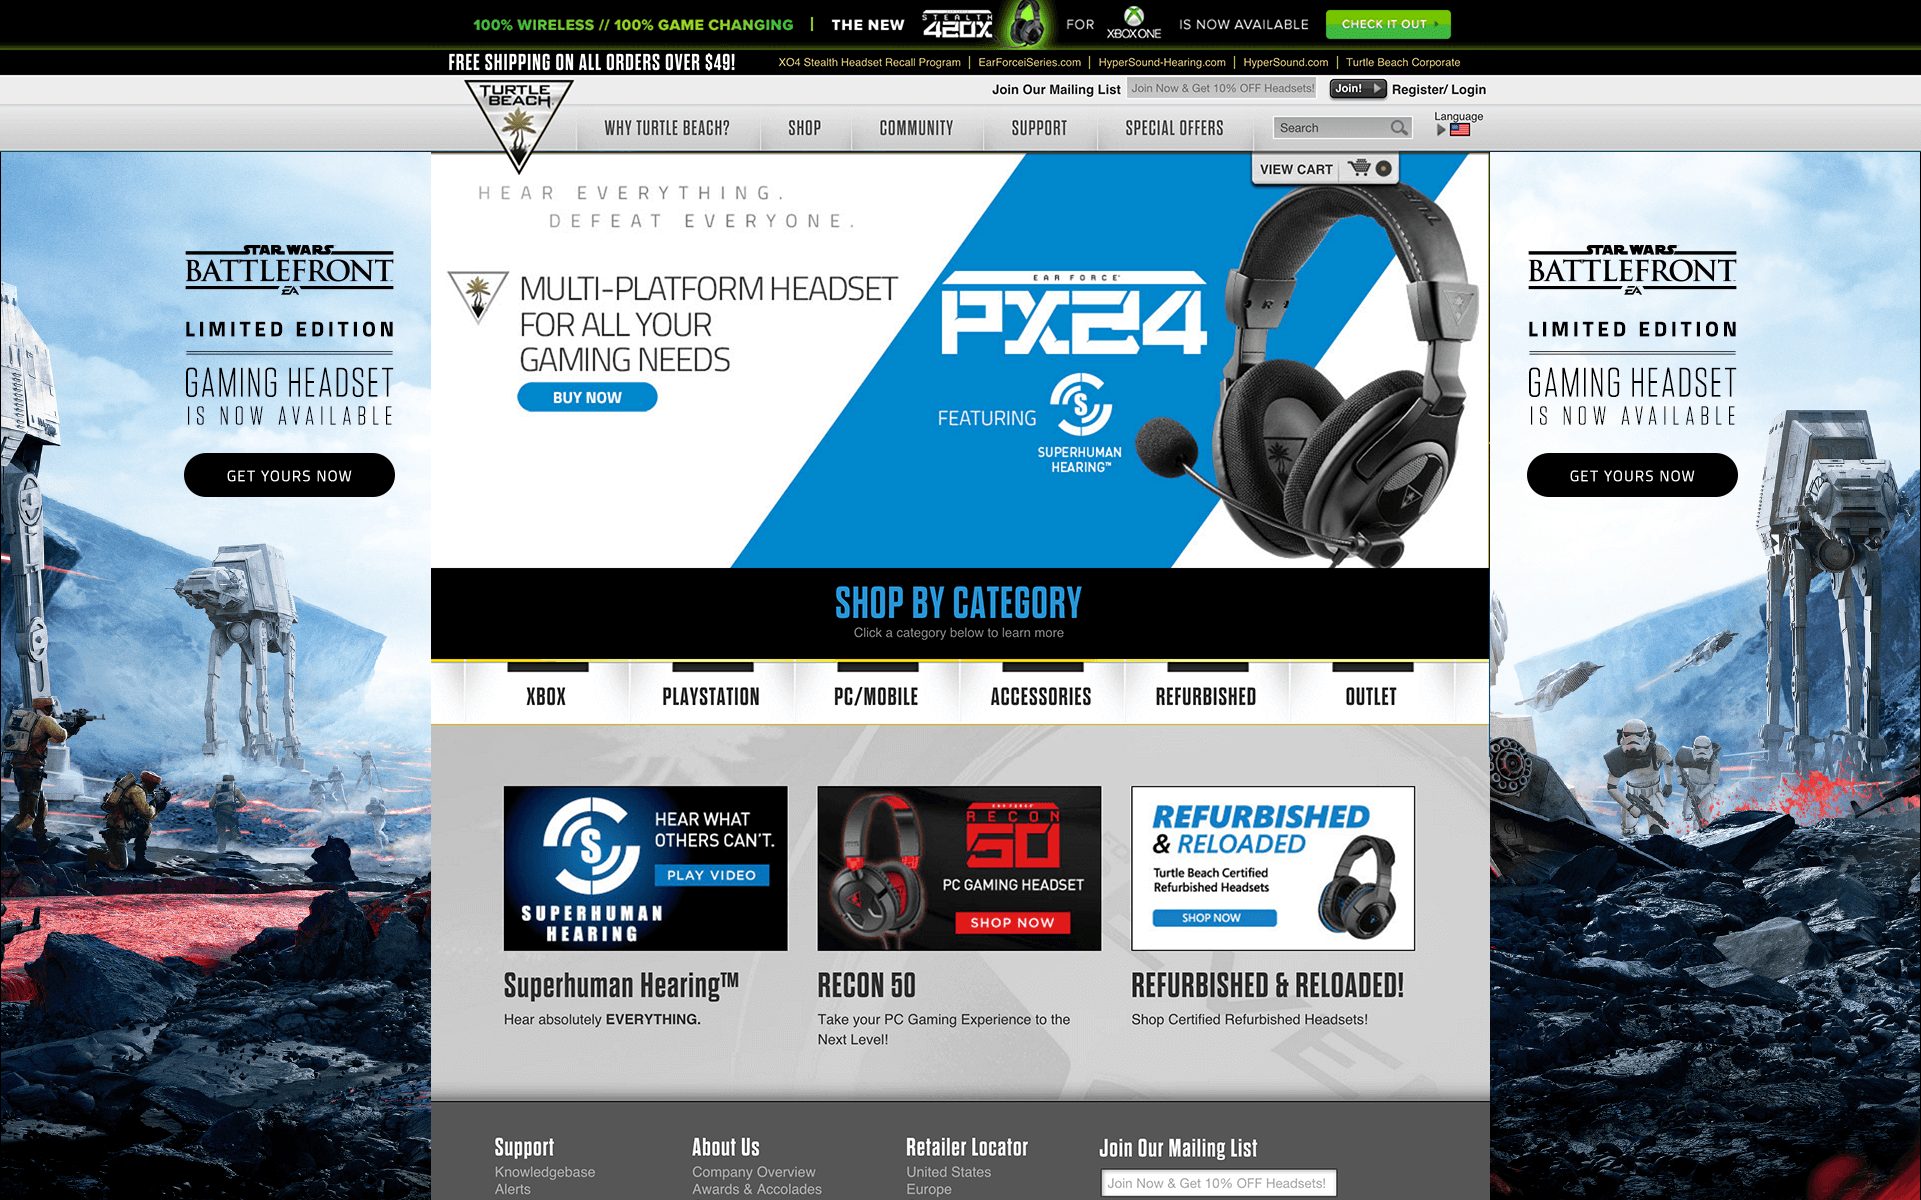 wPaper_turtlebeach_111215_v3_context.png